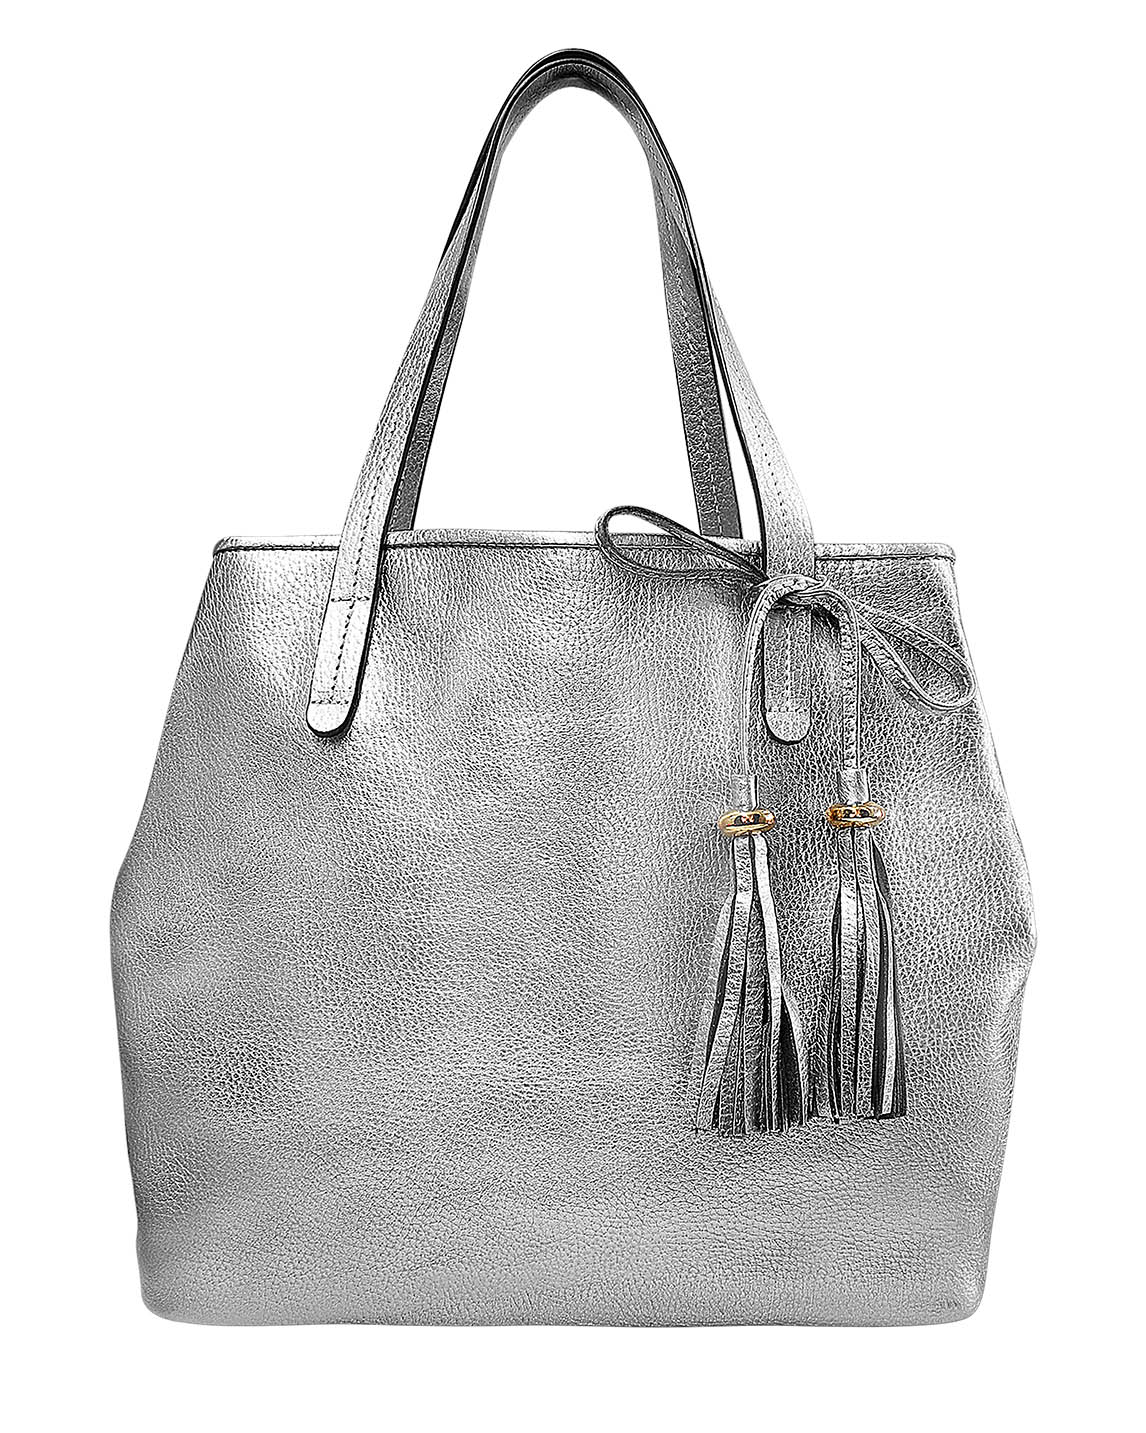 Cartera Tote Bag DS-2941 Color Plata